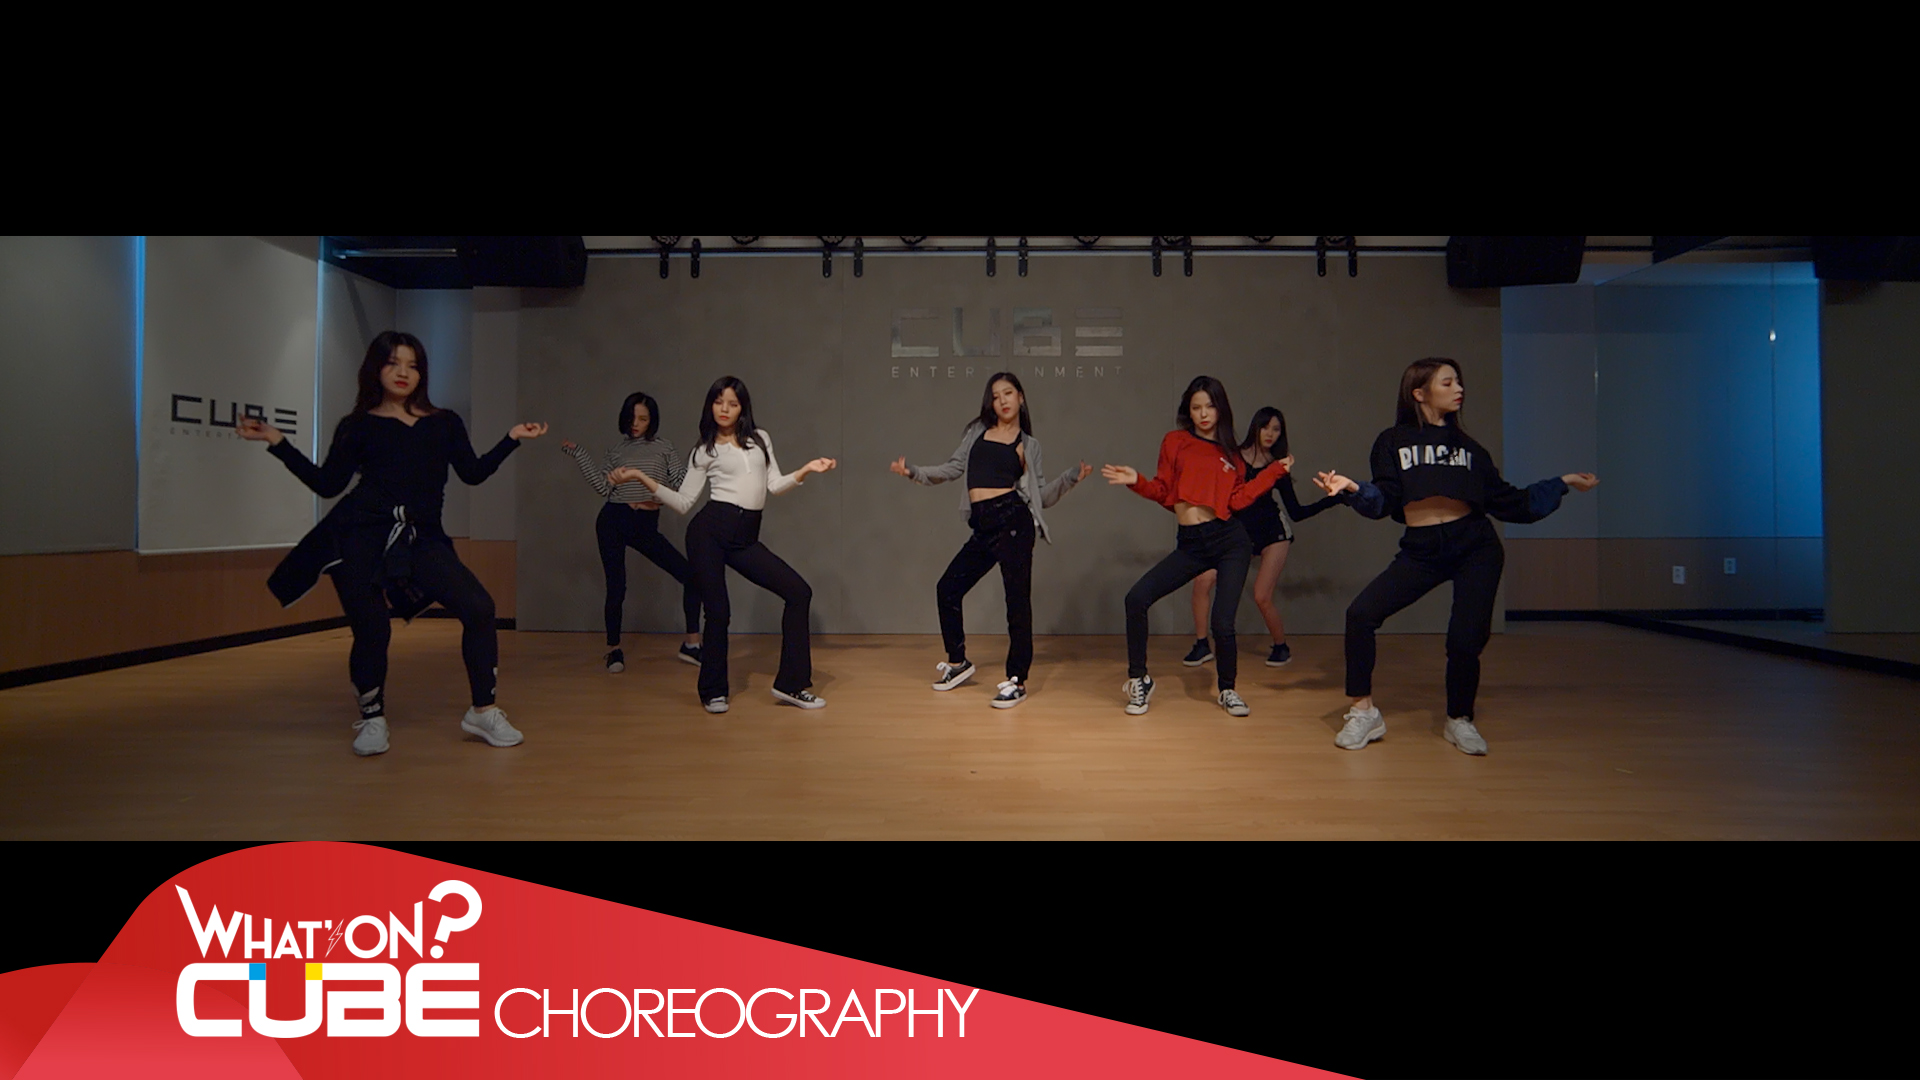 CLC - 'BLACK DRESS' (Choreography Practice Video)